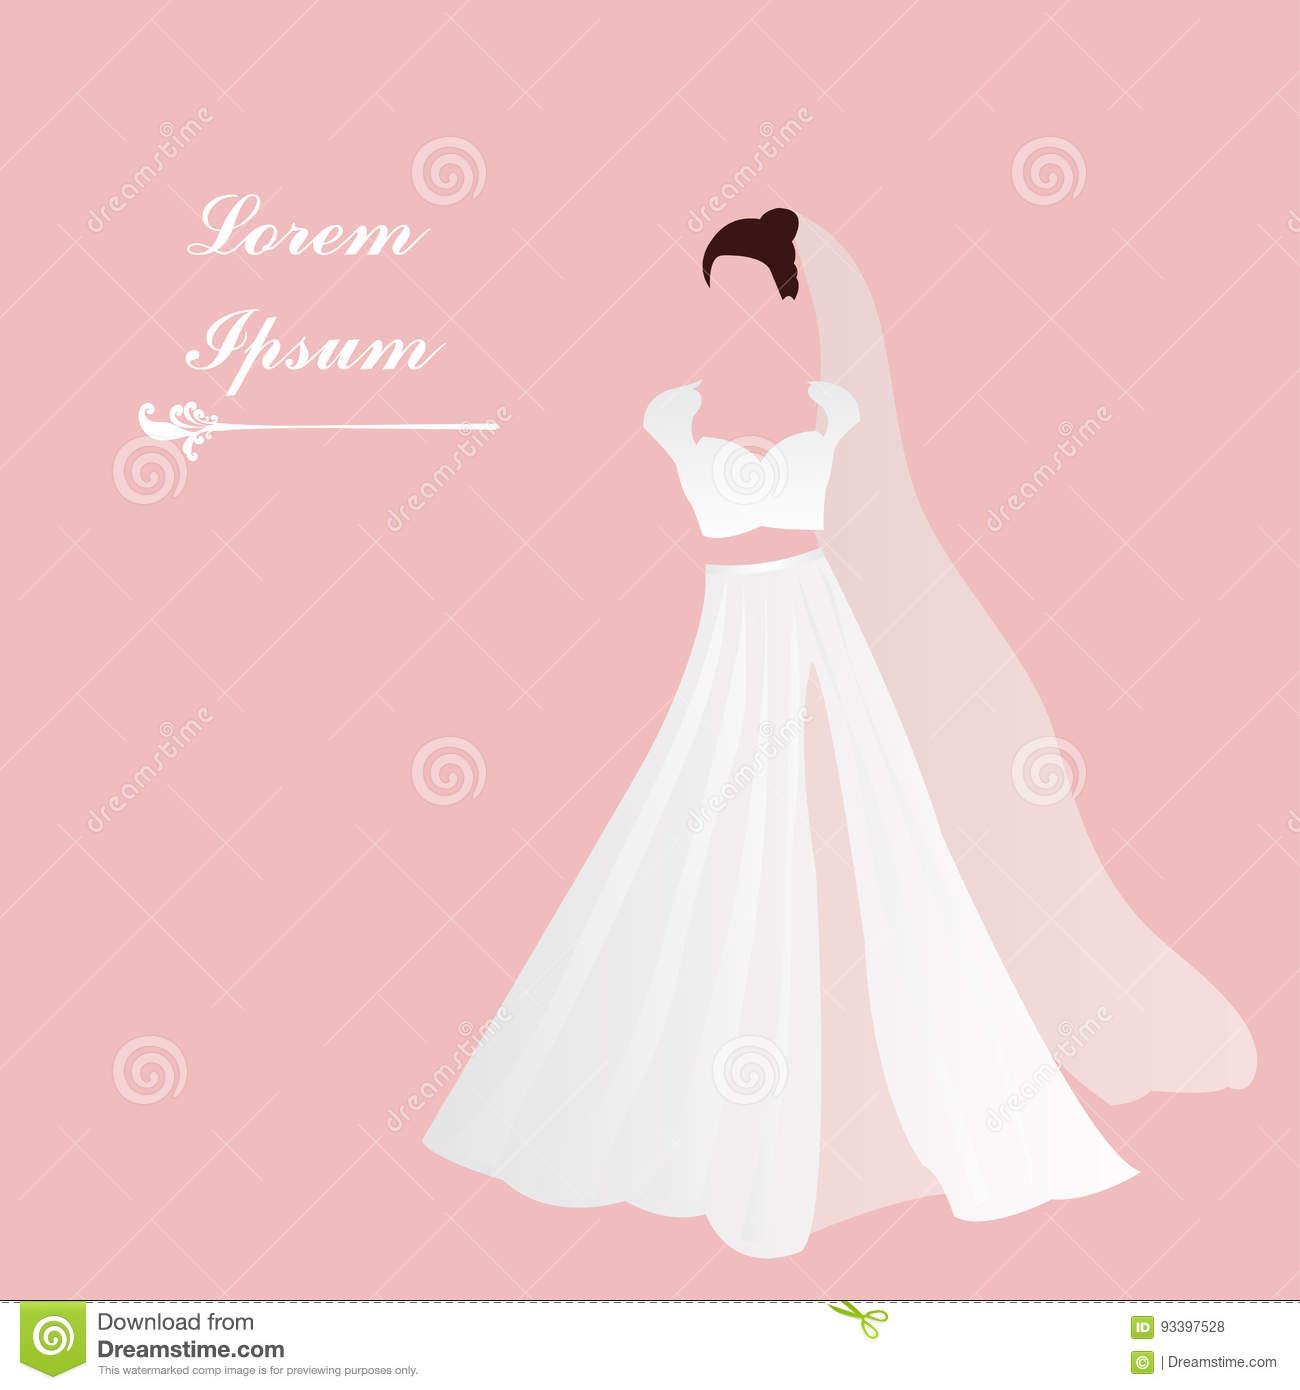 bridal gown white dress pink background add text bridal shower